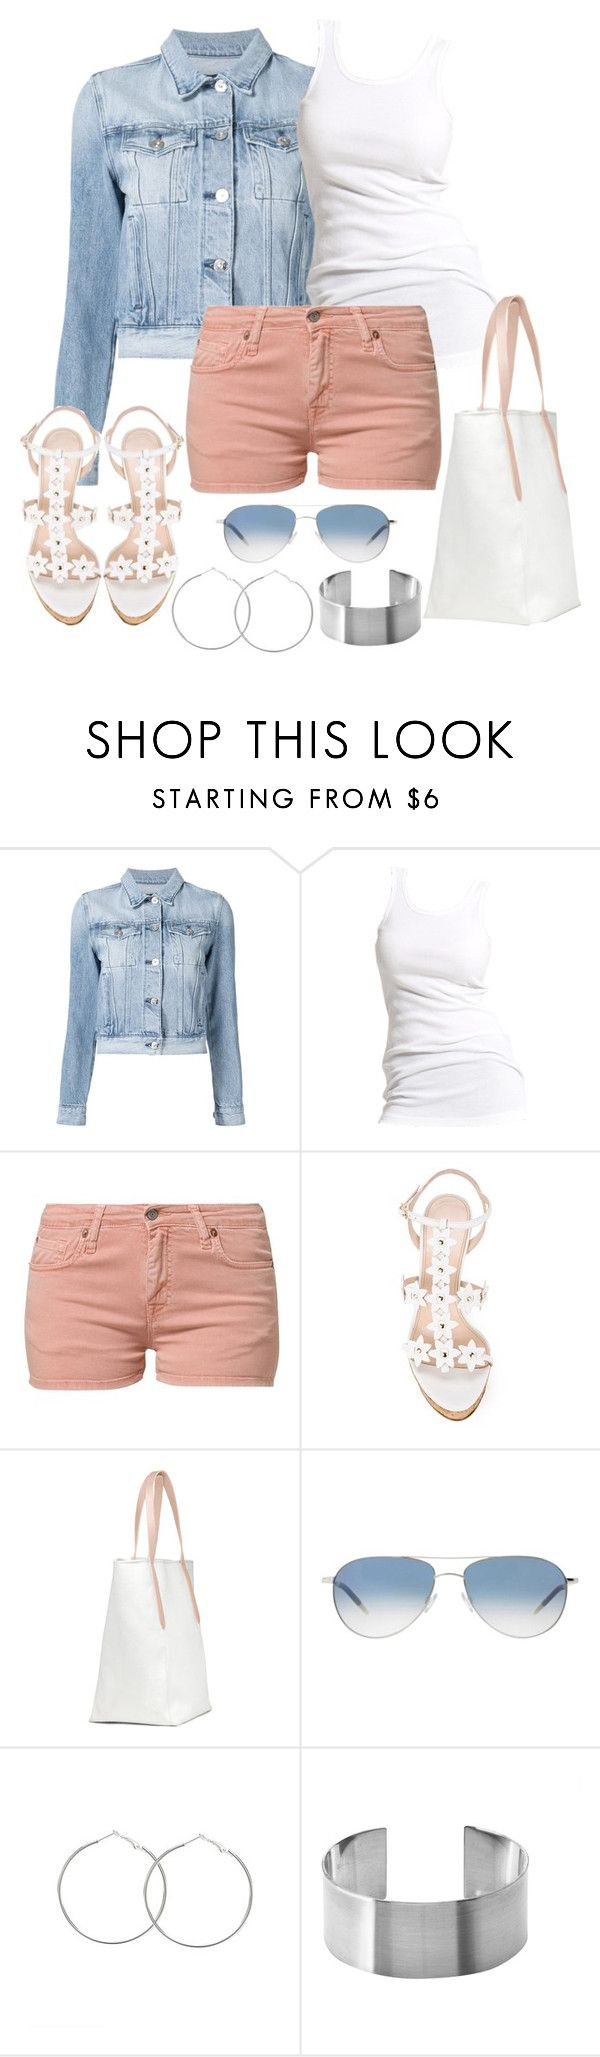 """""""Untitled #1126"""" by gallant81 ❤ liked on Polyvore featuring 3x1, Soaked in Luxury, Edwin, Oscar de la Renta, Oliver Peoples and Maria Dorai Raj"""